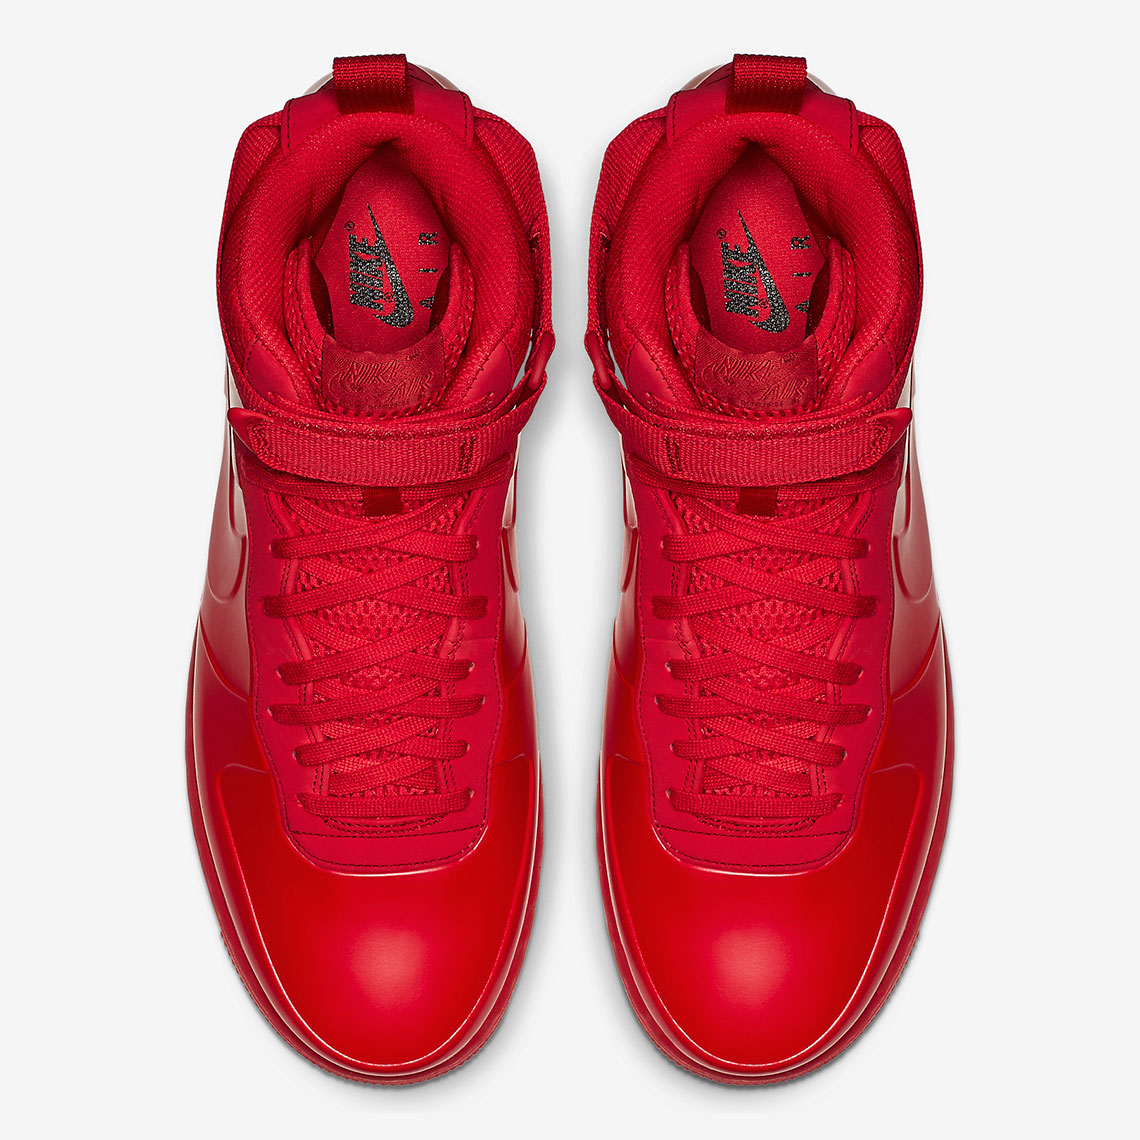 best cheap cca53 7b28d Nike Air Force 1 Foamposite Red BV1172-600 | SneakerNews.com